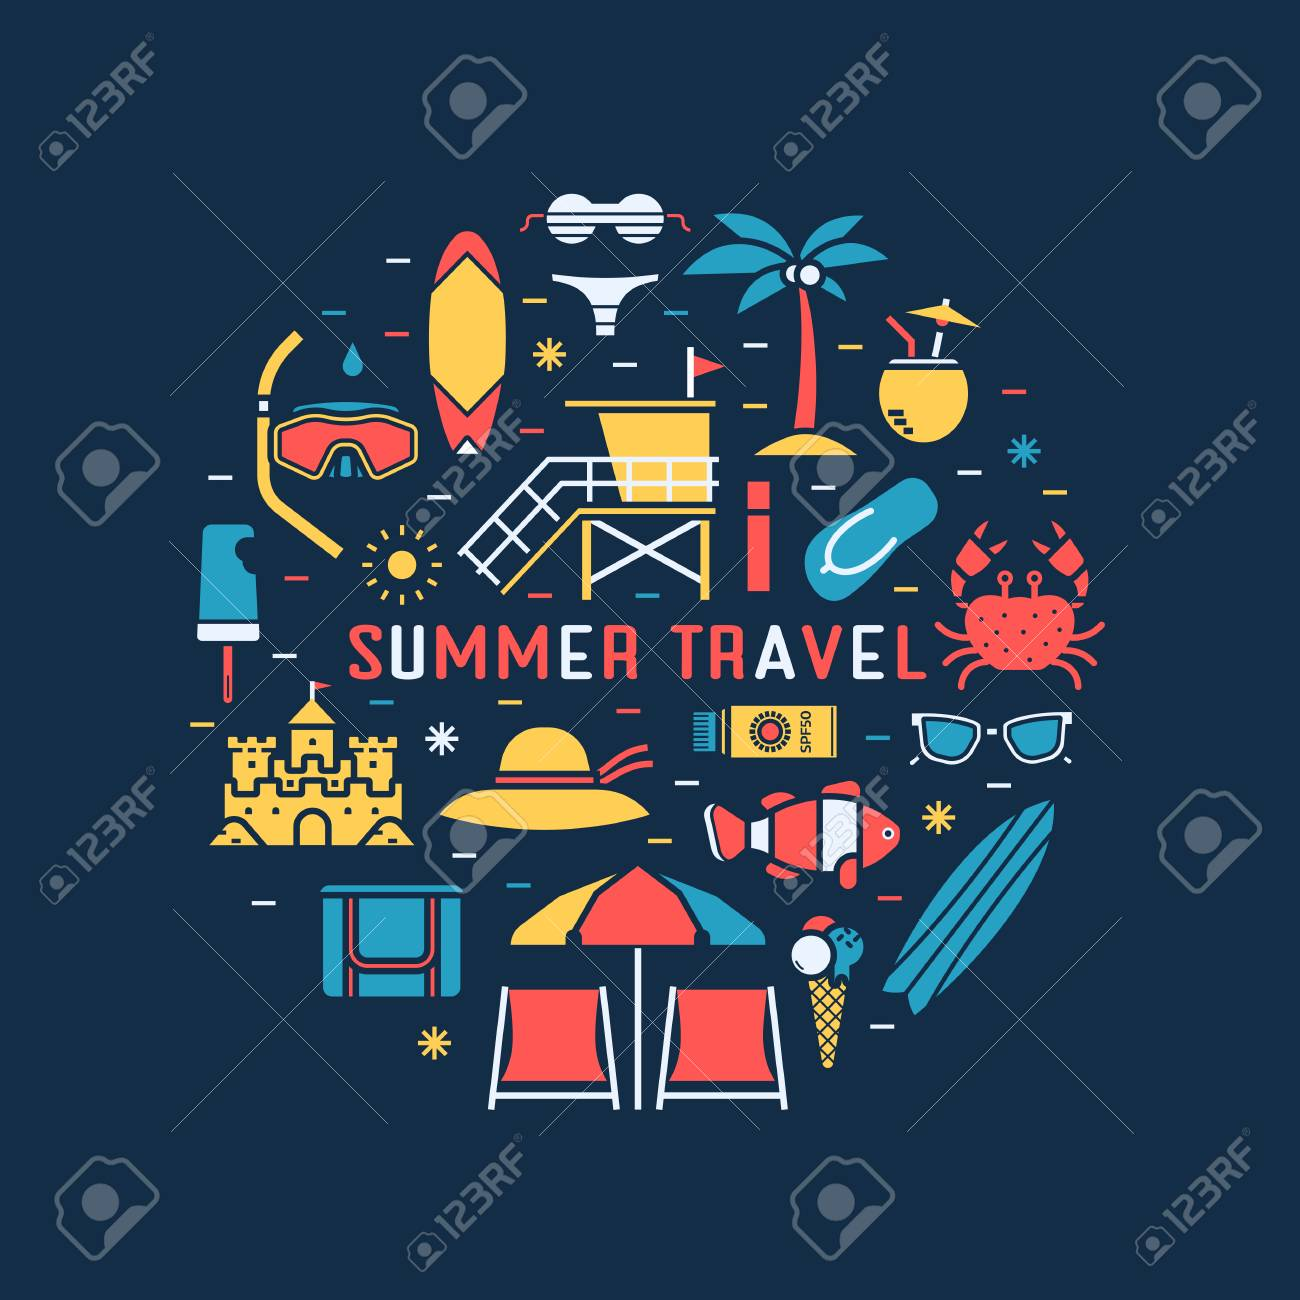 Summer travel concept background with sea beach icons in circle. Summertime tropical holidays collection in linear style. Sunbathing accessories and beach activity elements vector illustration. Archivio Fotografico - 79166229